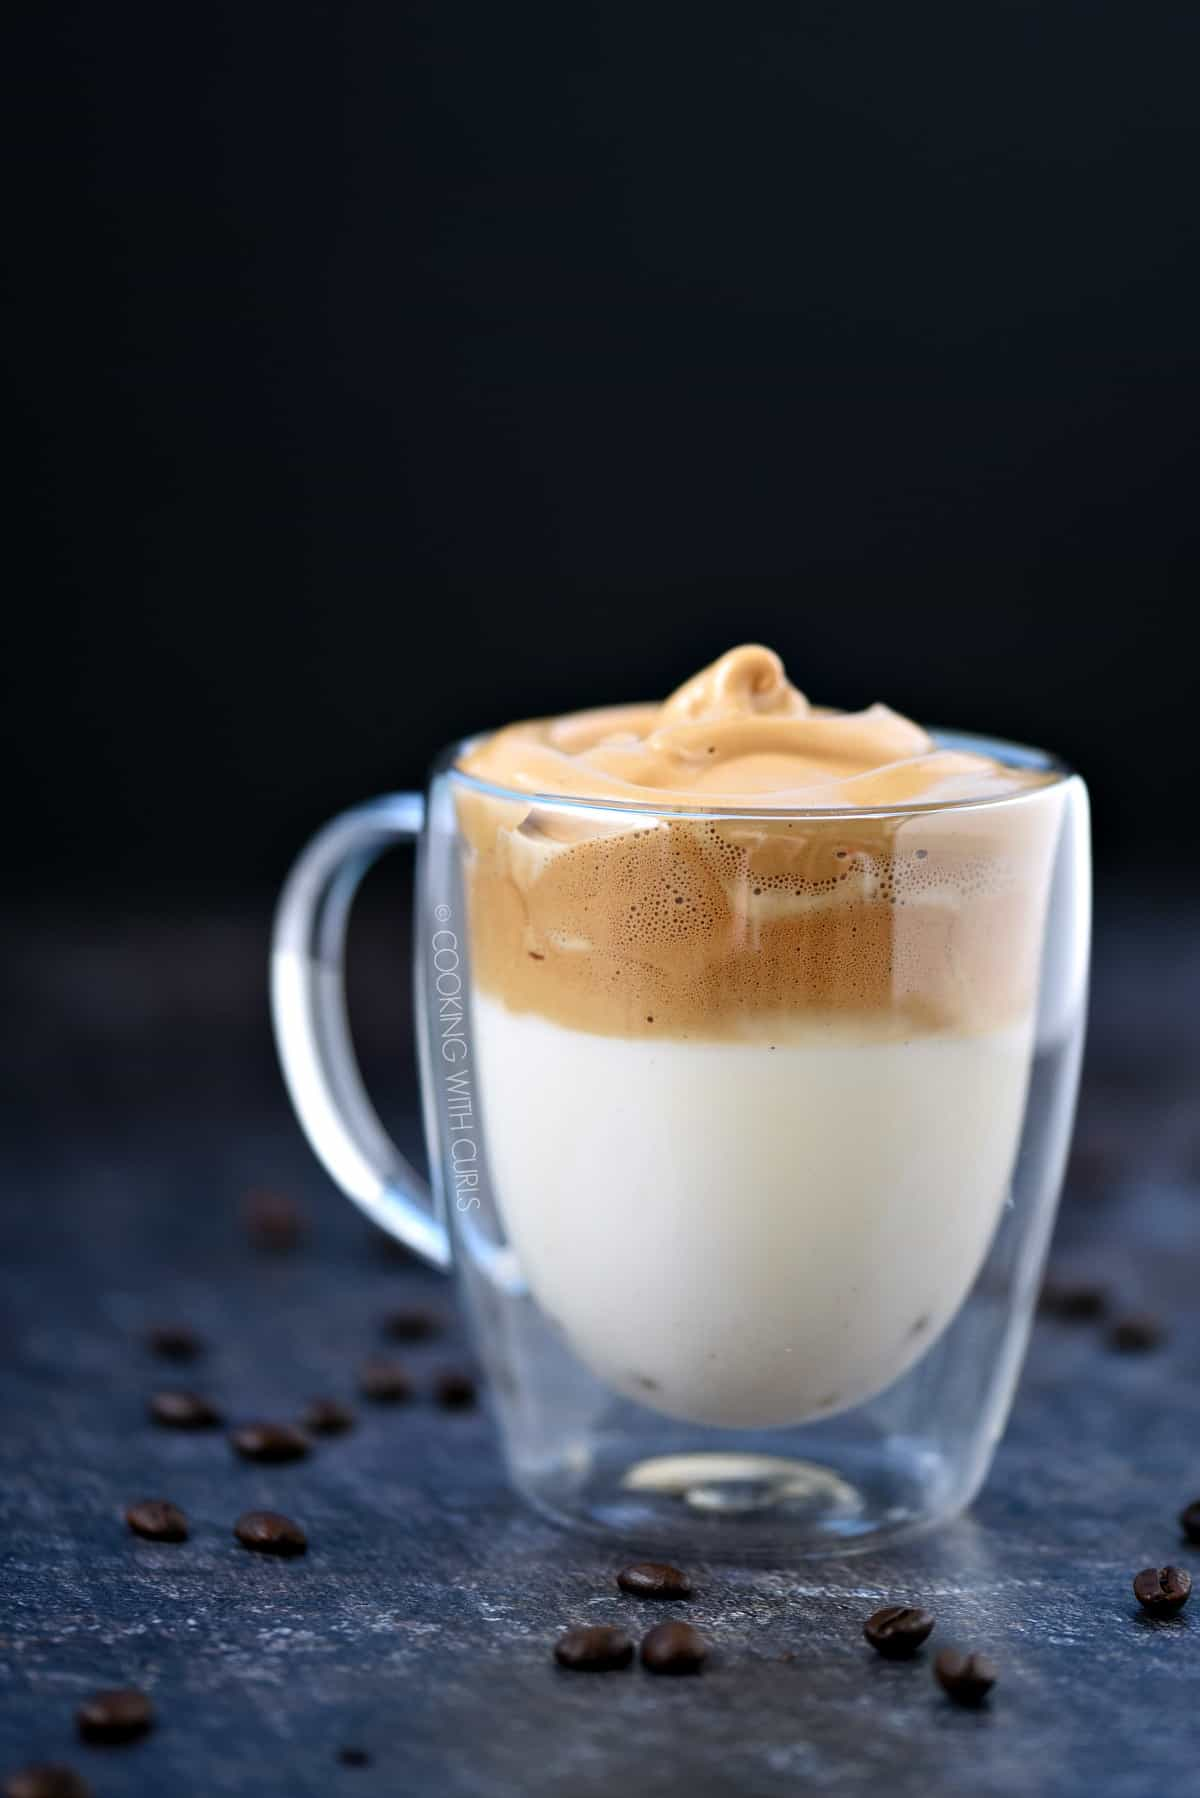 A layer of milk topped with a layer of Whipped Dalgona Coffee in a clear glass mug.